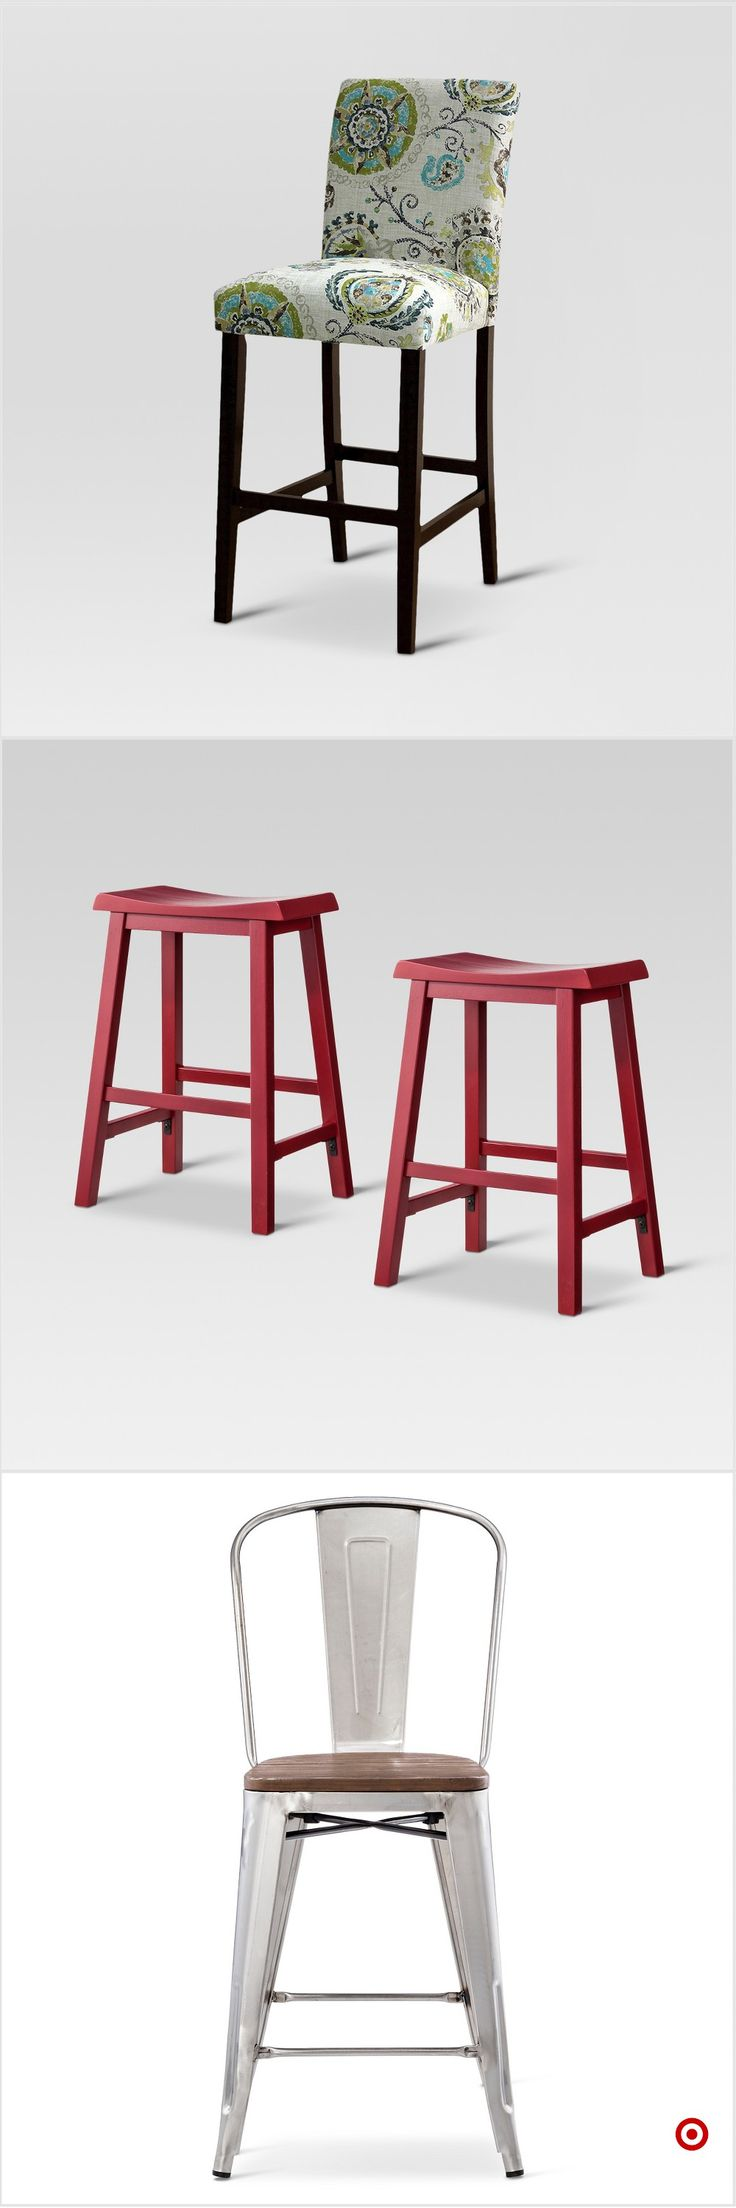 Shop Target for bar stools  counter stools you will love at great low prices. Free shipping on all orders or free same-day pick-up in store.